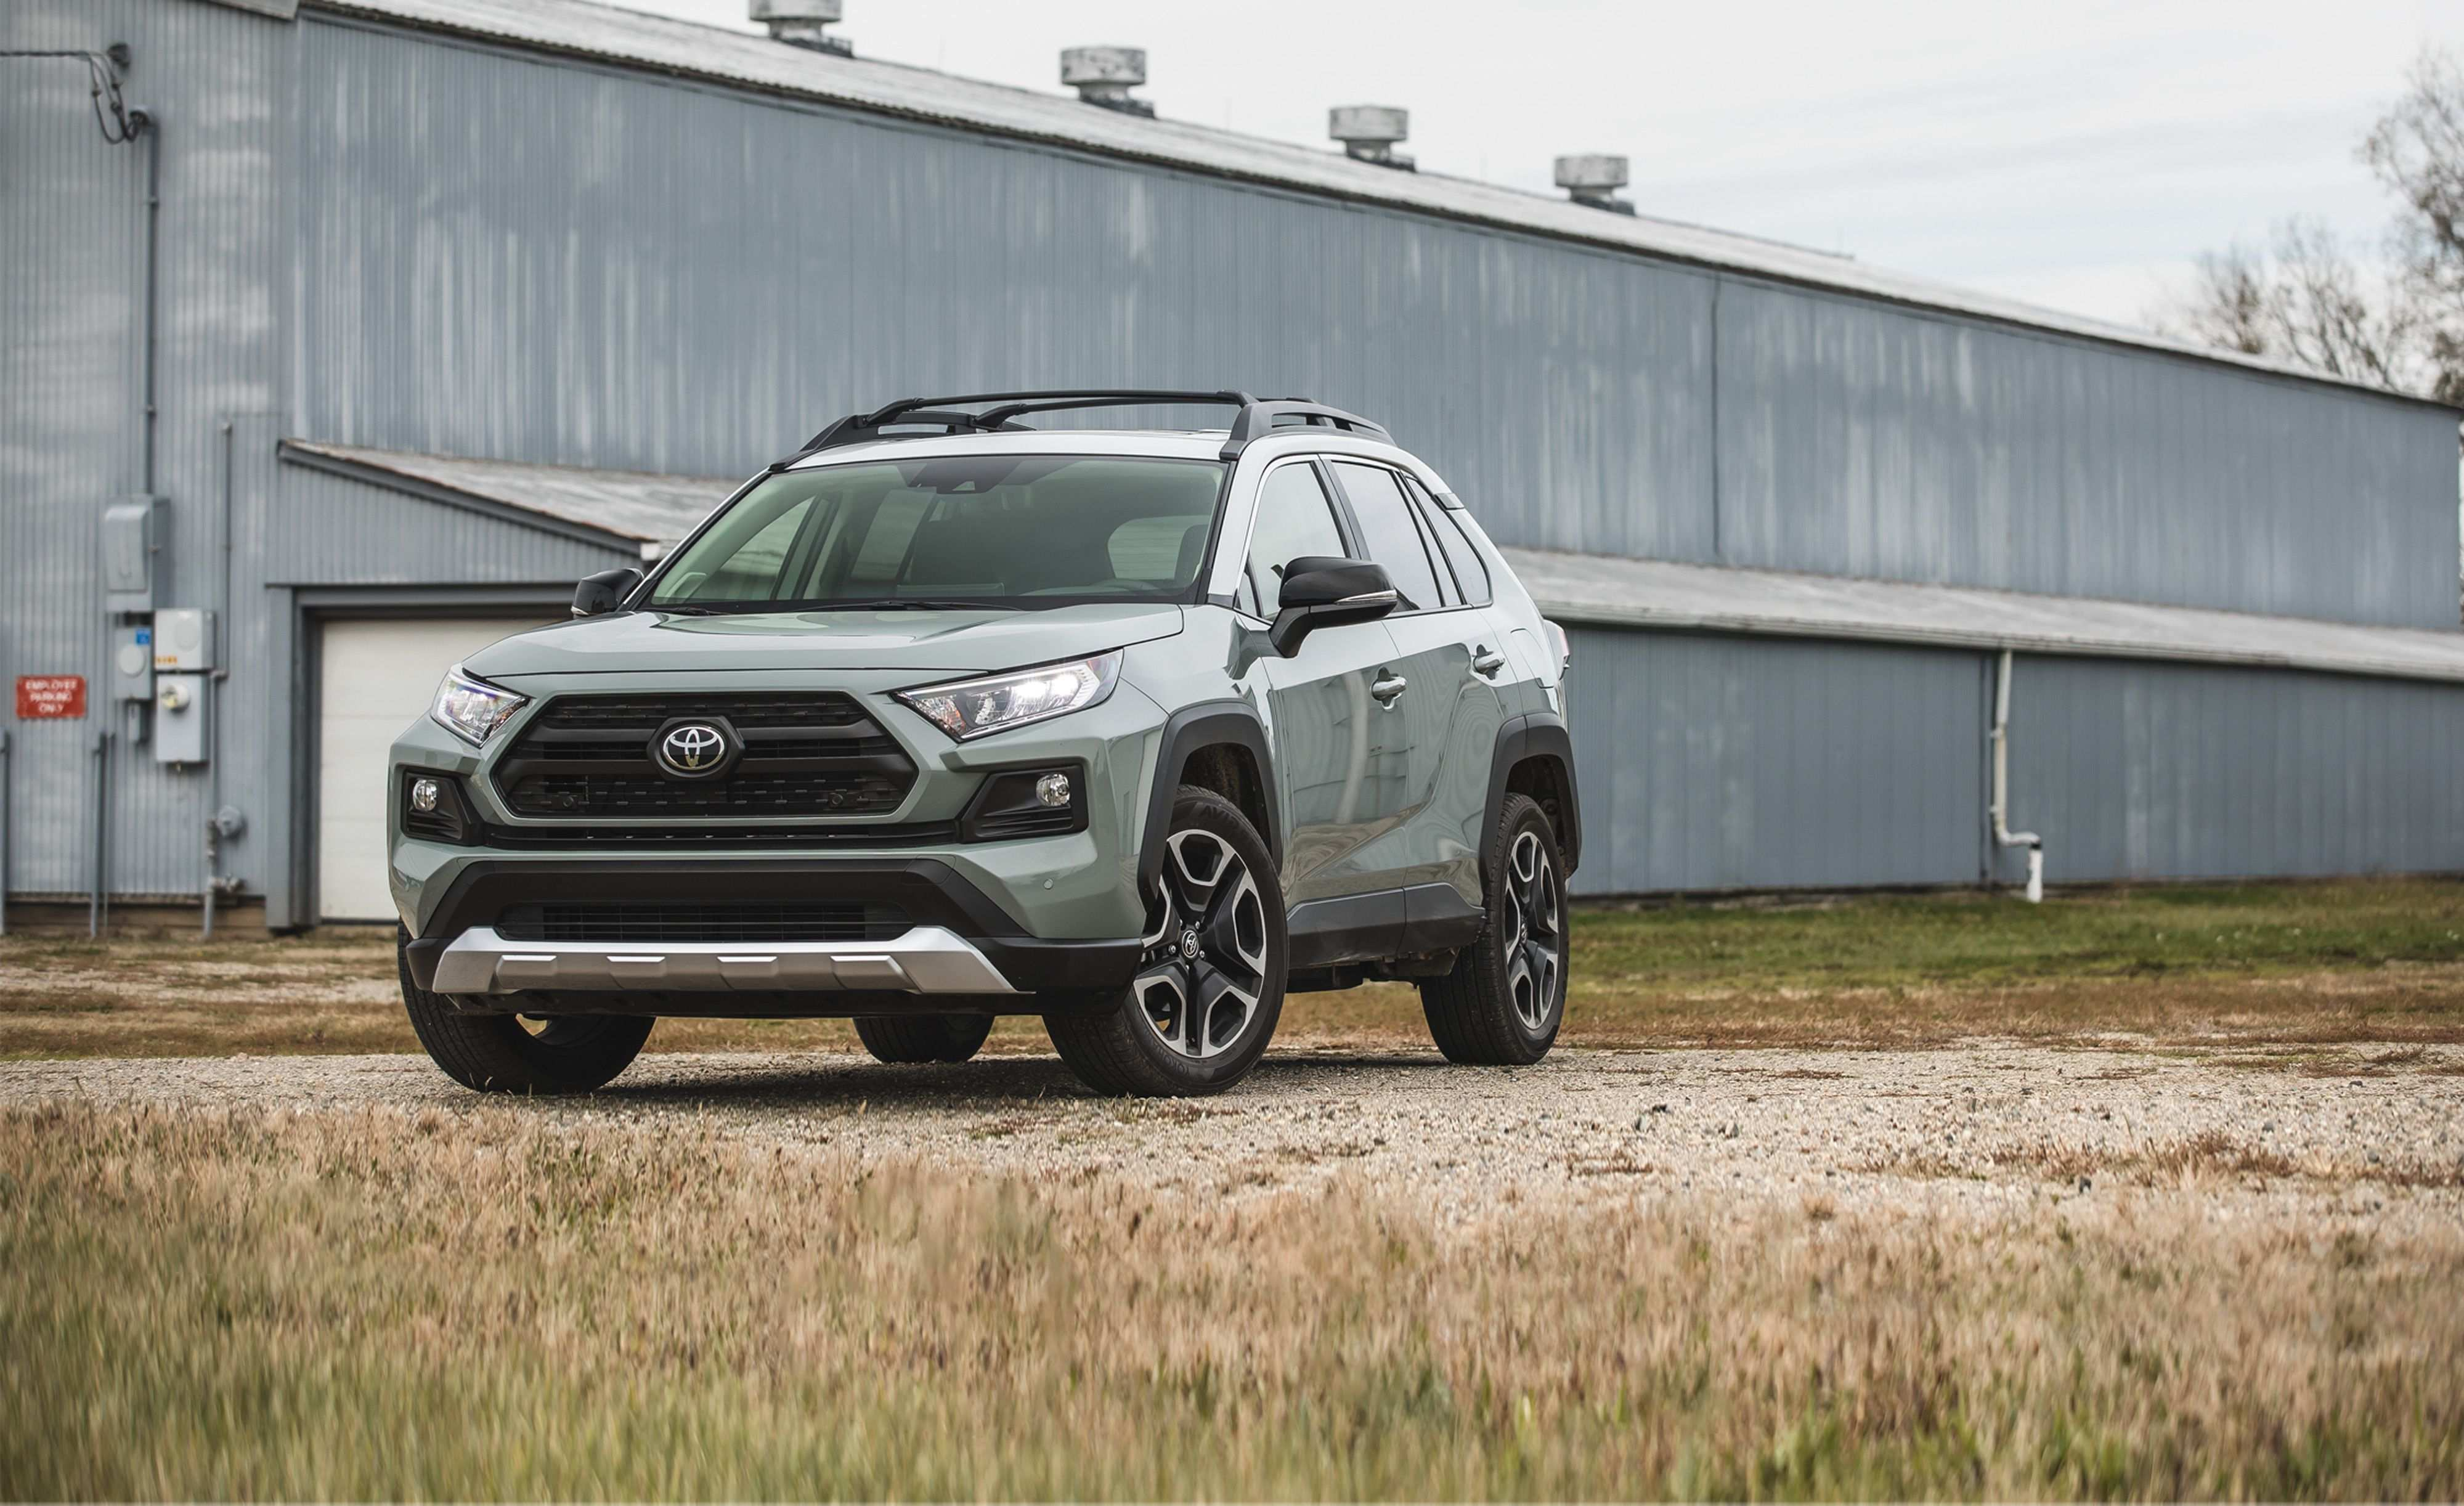 45 Great Best Toyota 2019 Rav4 Specs Price Prices with Best Toyota 2019 Rav4 Specs Price